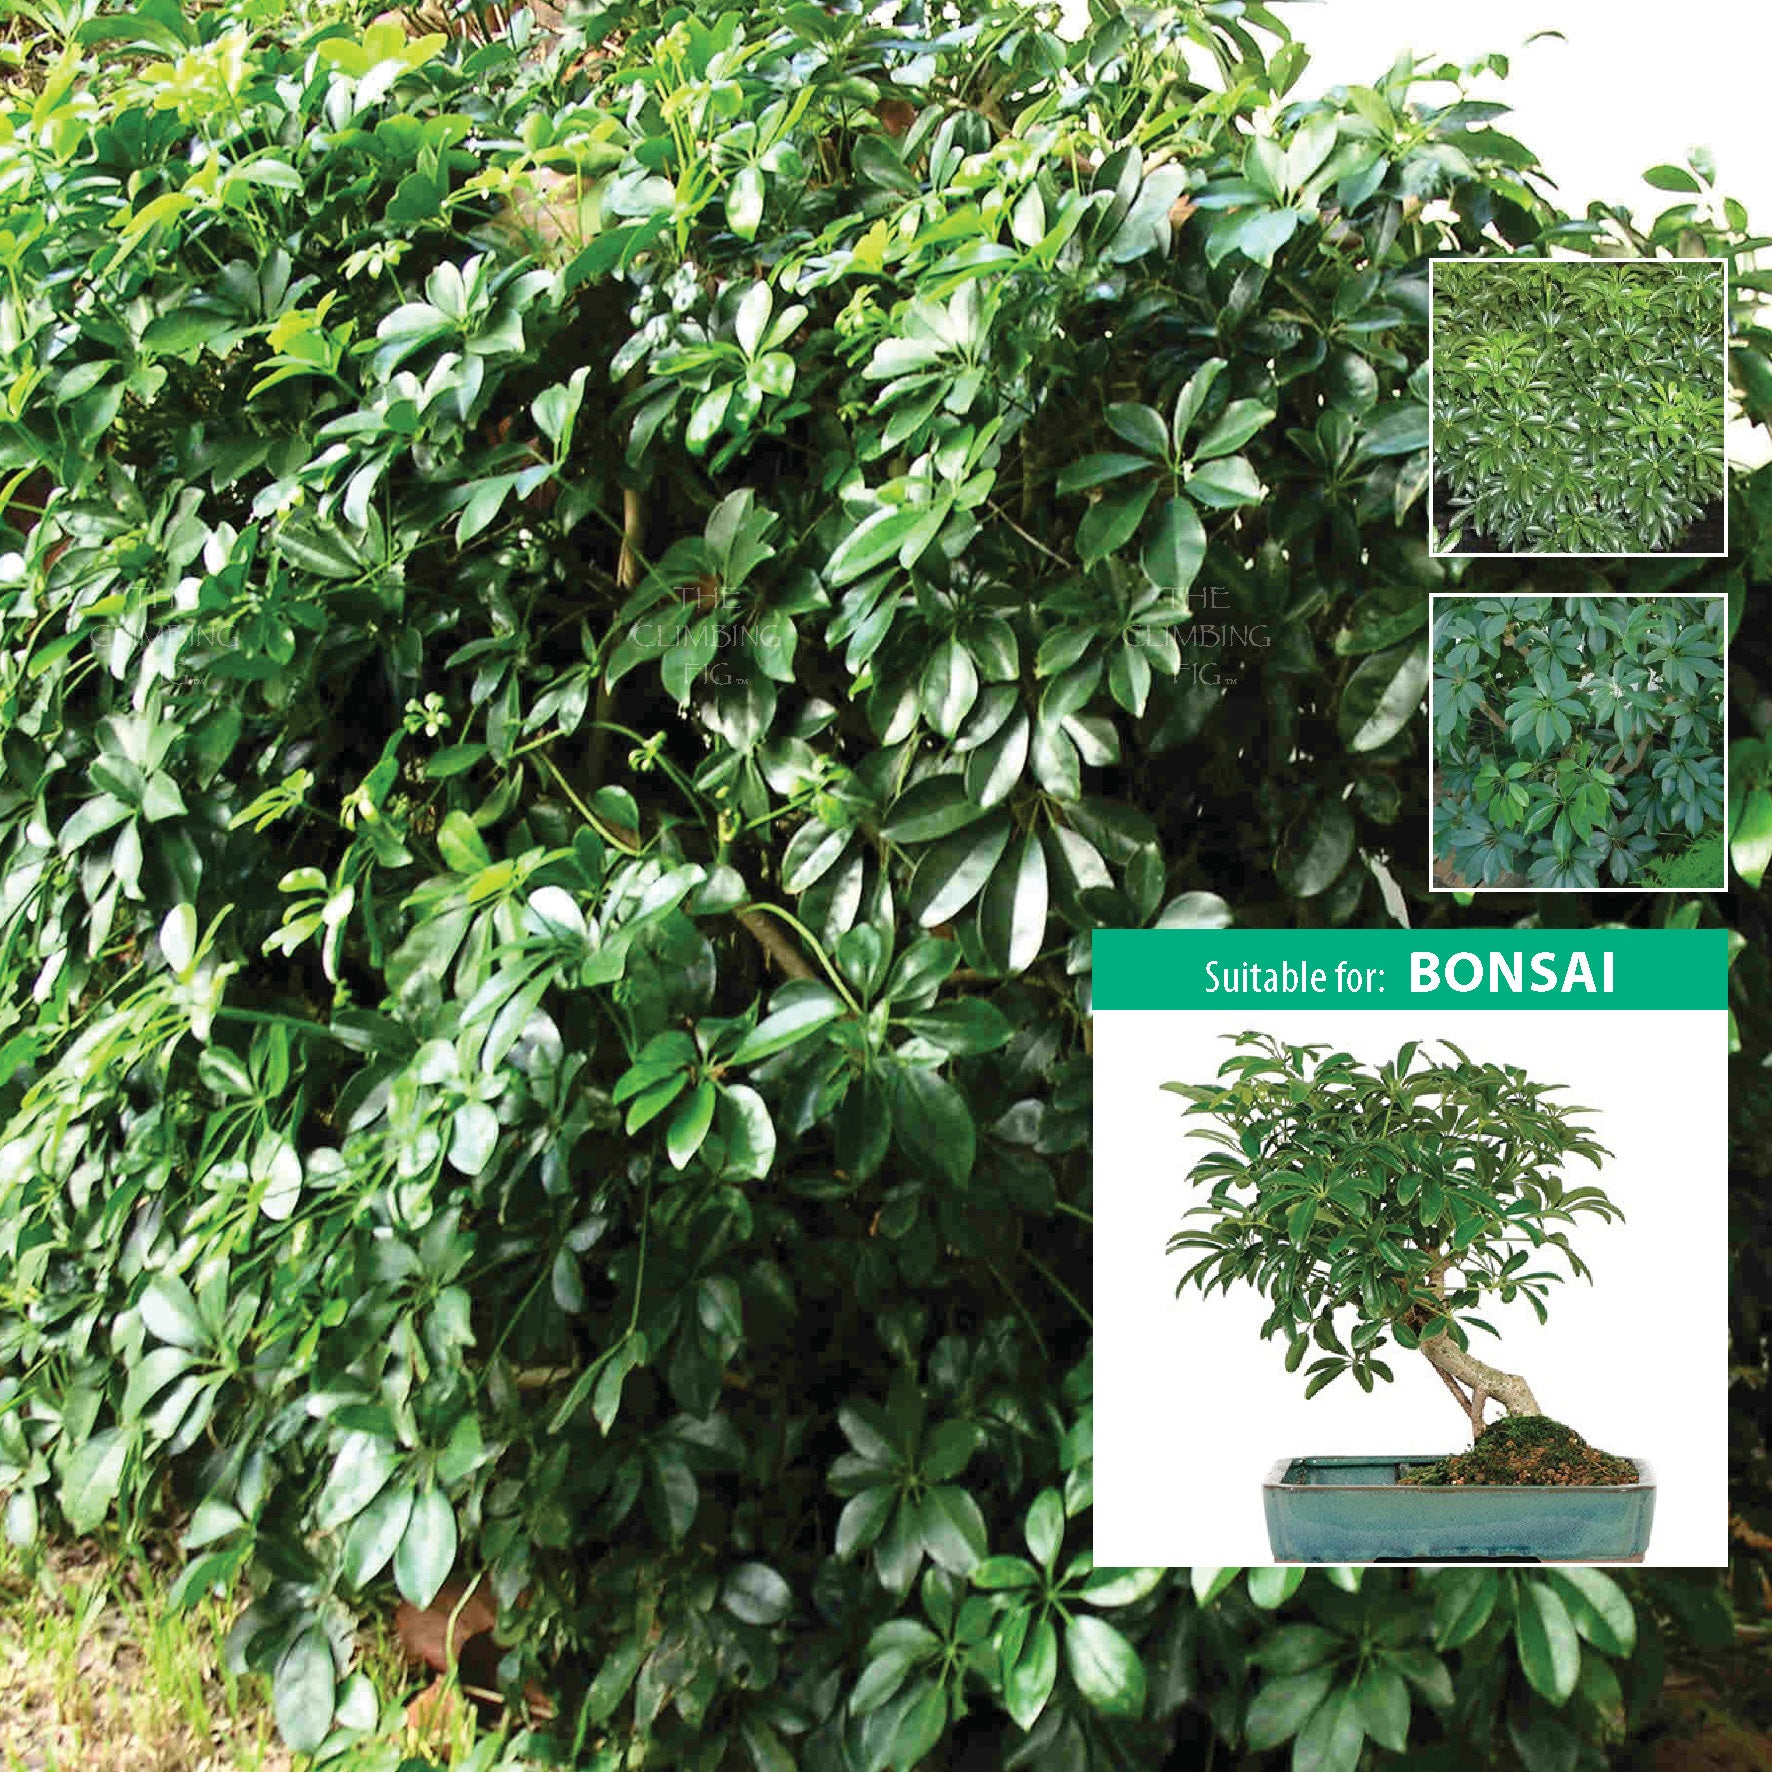 Schefflera Dwarf Arboricola Tree Seeds (Dwarf Umbrella Tree)